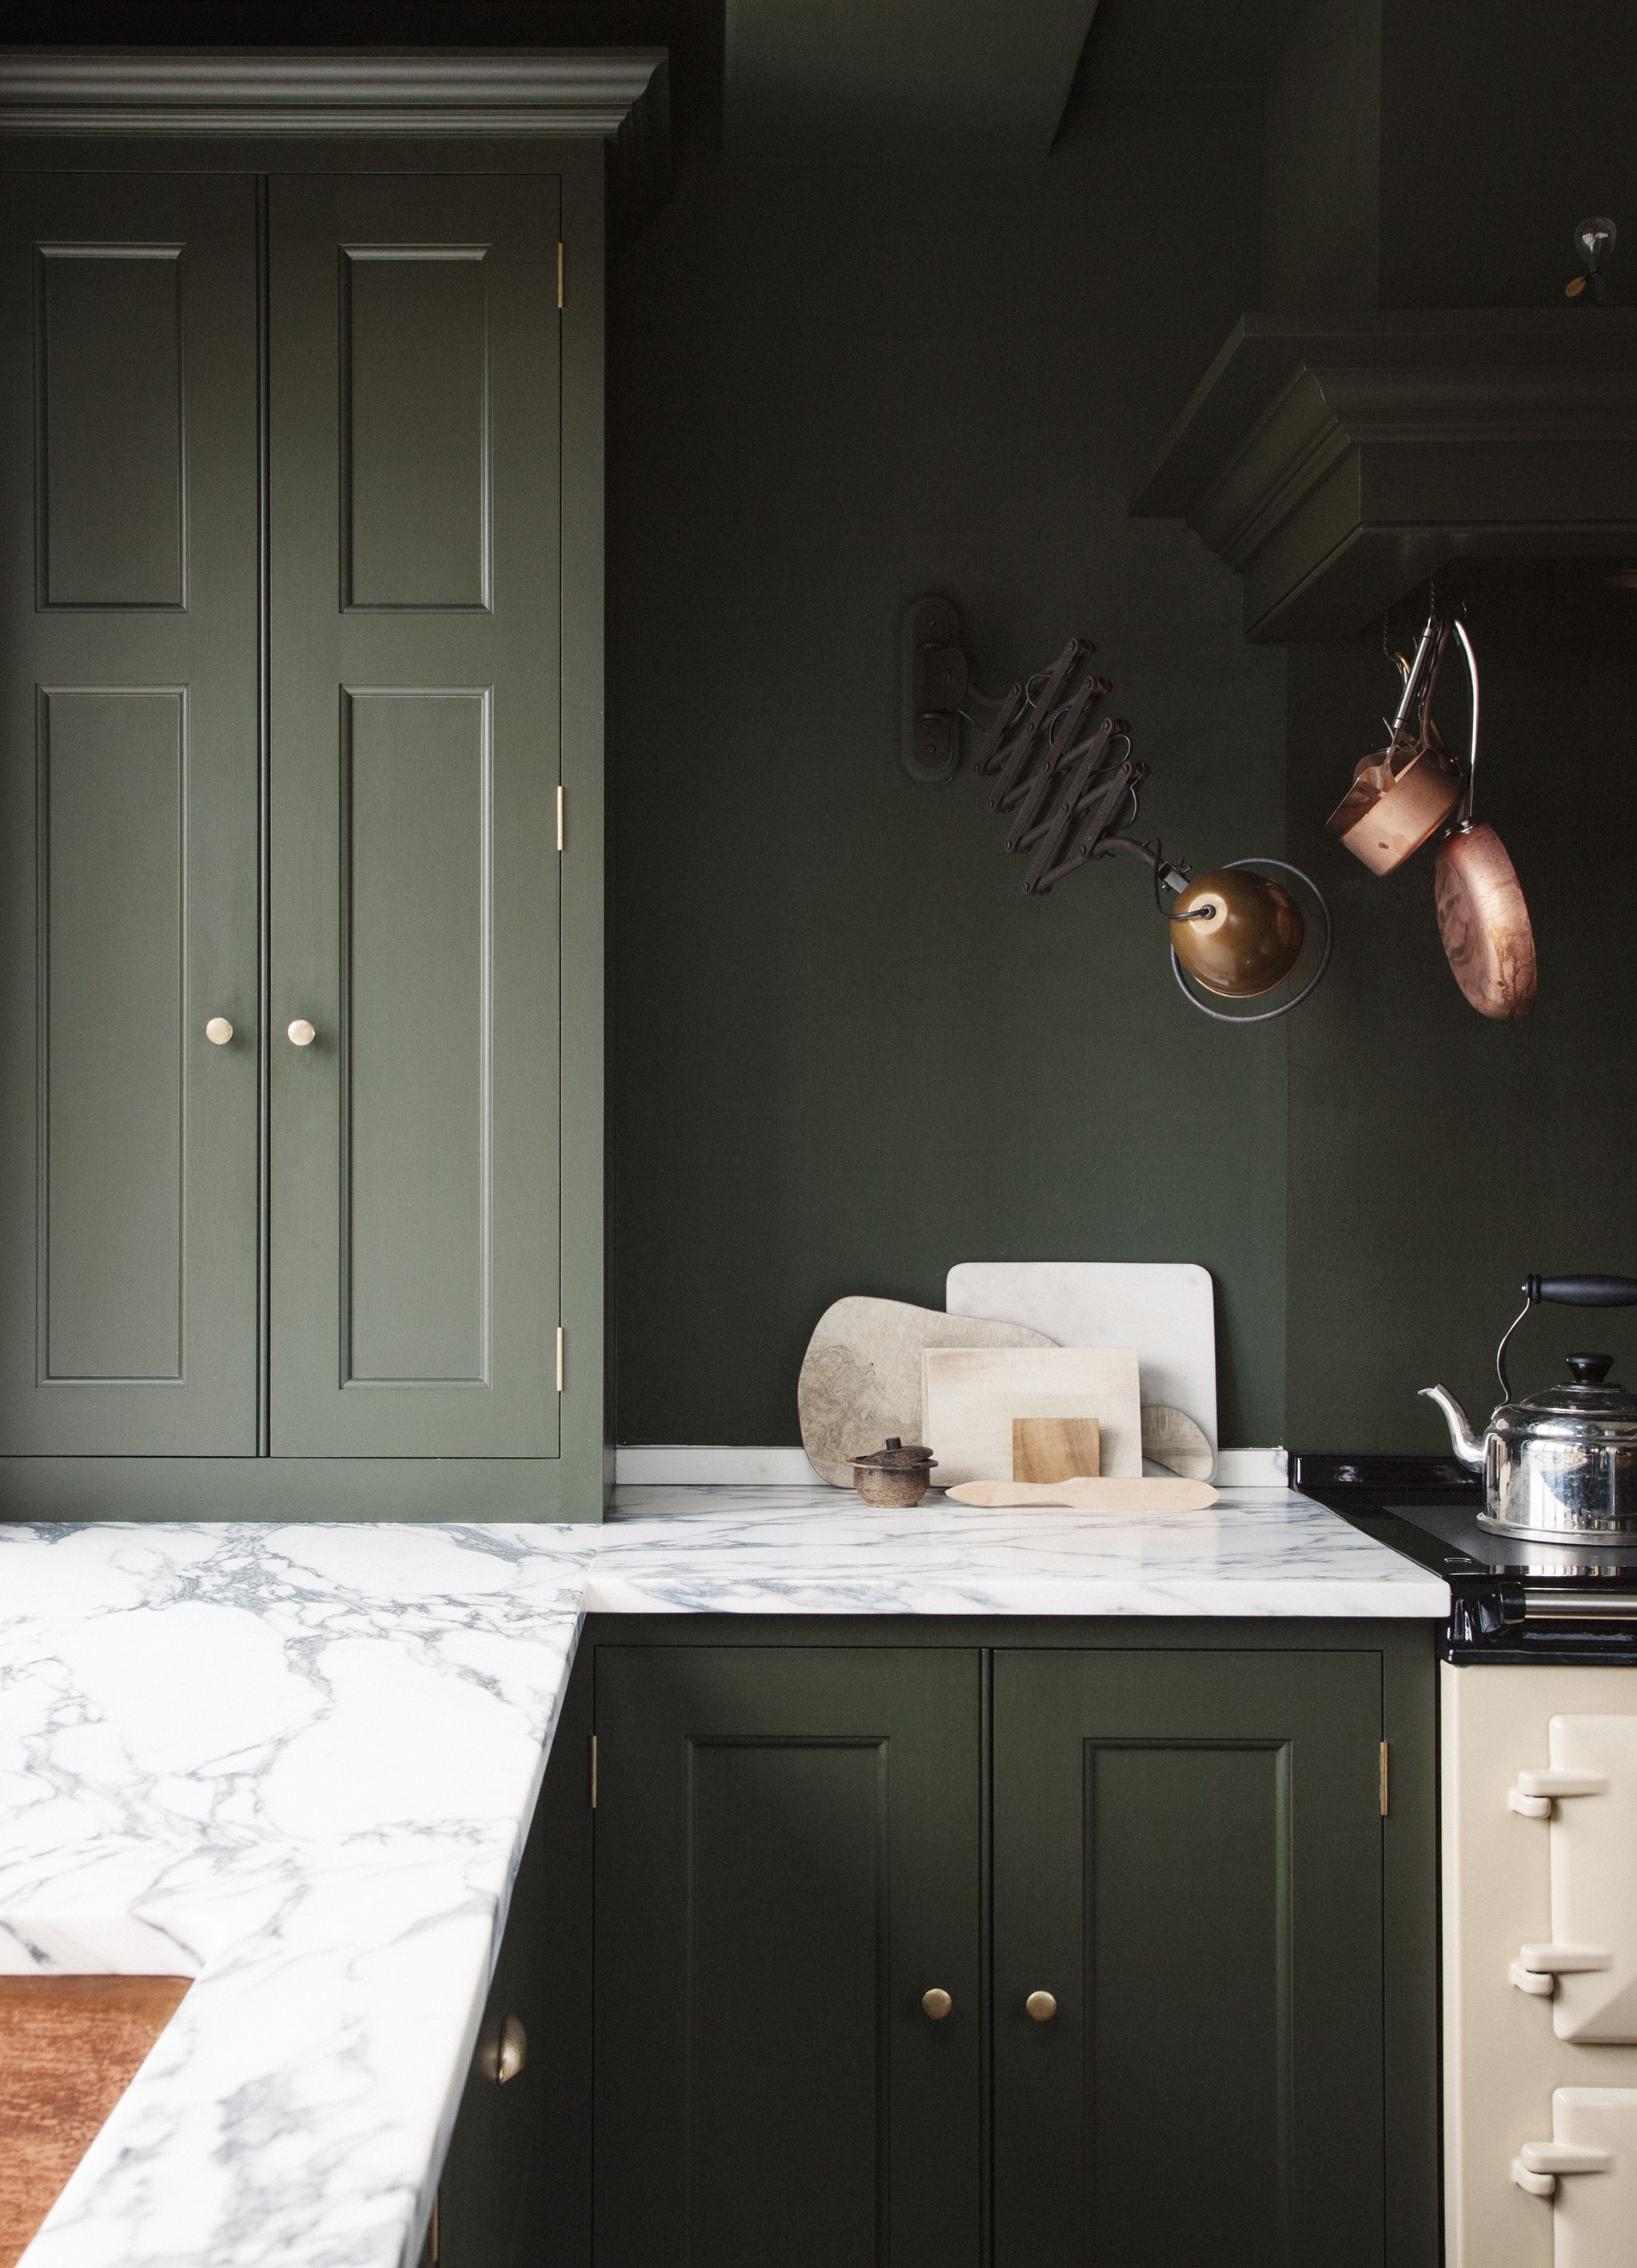 Green Kitchen Cabinet Doors Green Kitchen Cabinet And Matching Wall Colour Inspired